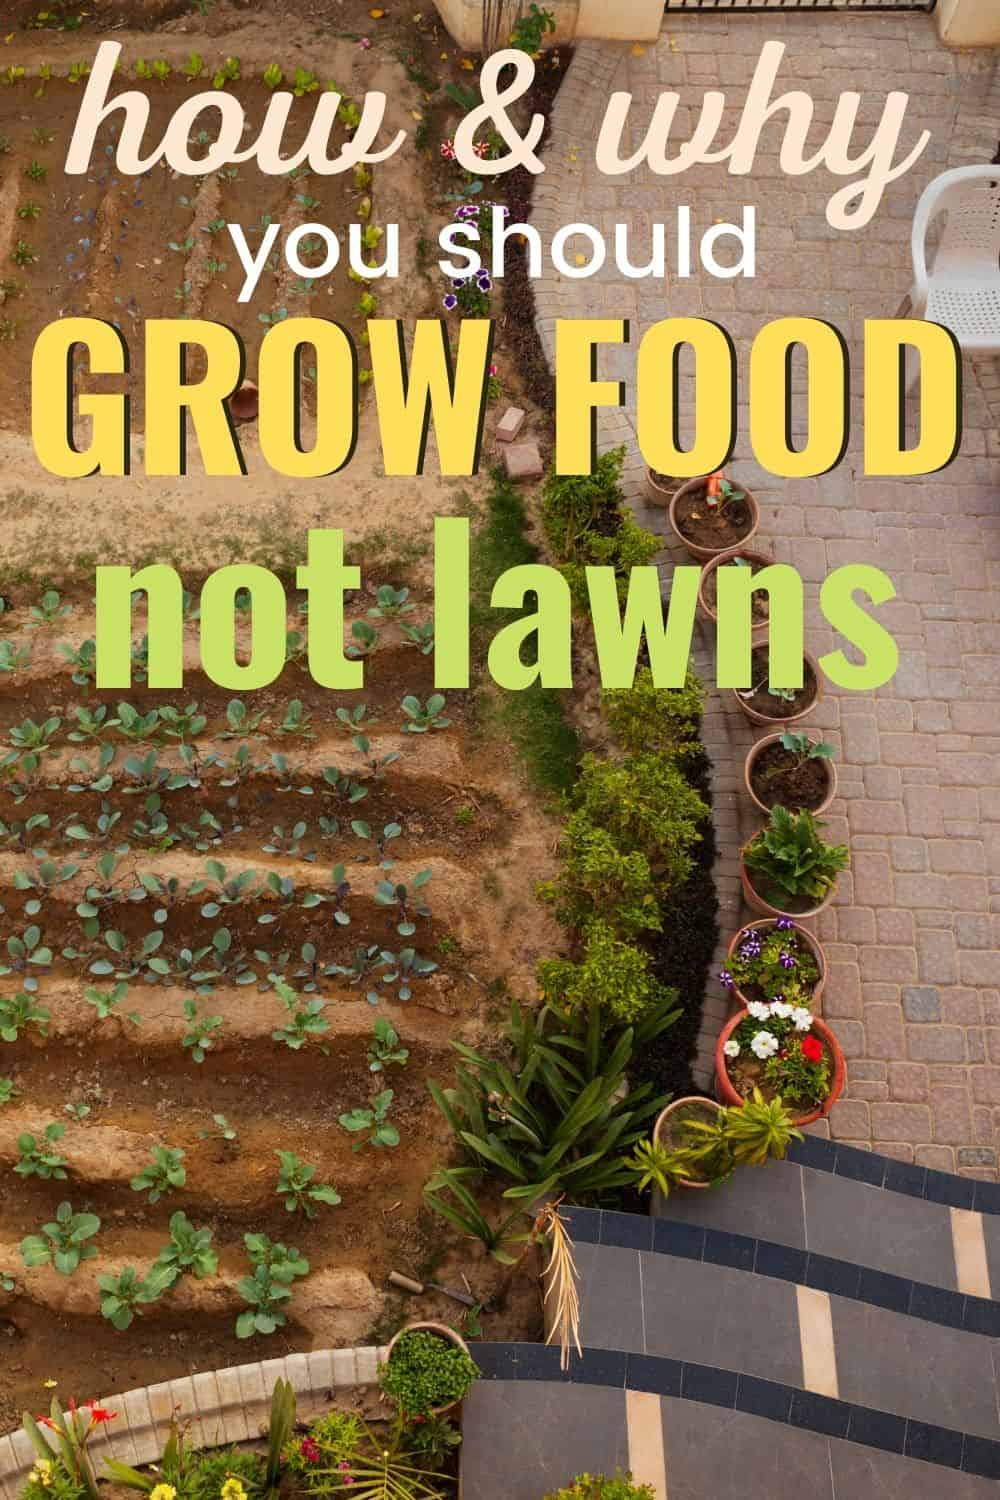 How and why you shuld grow food, not lawns